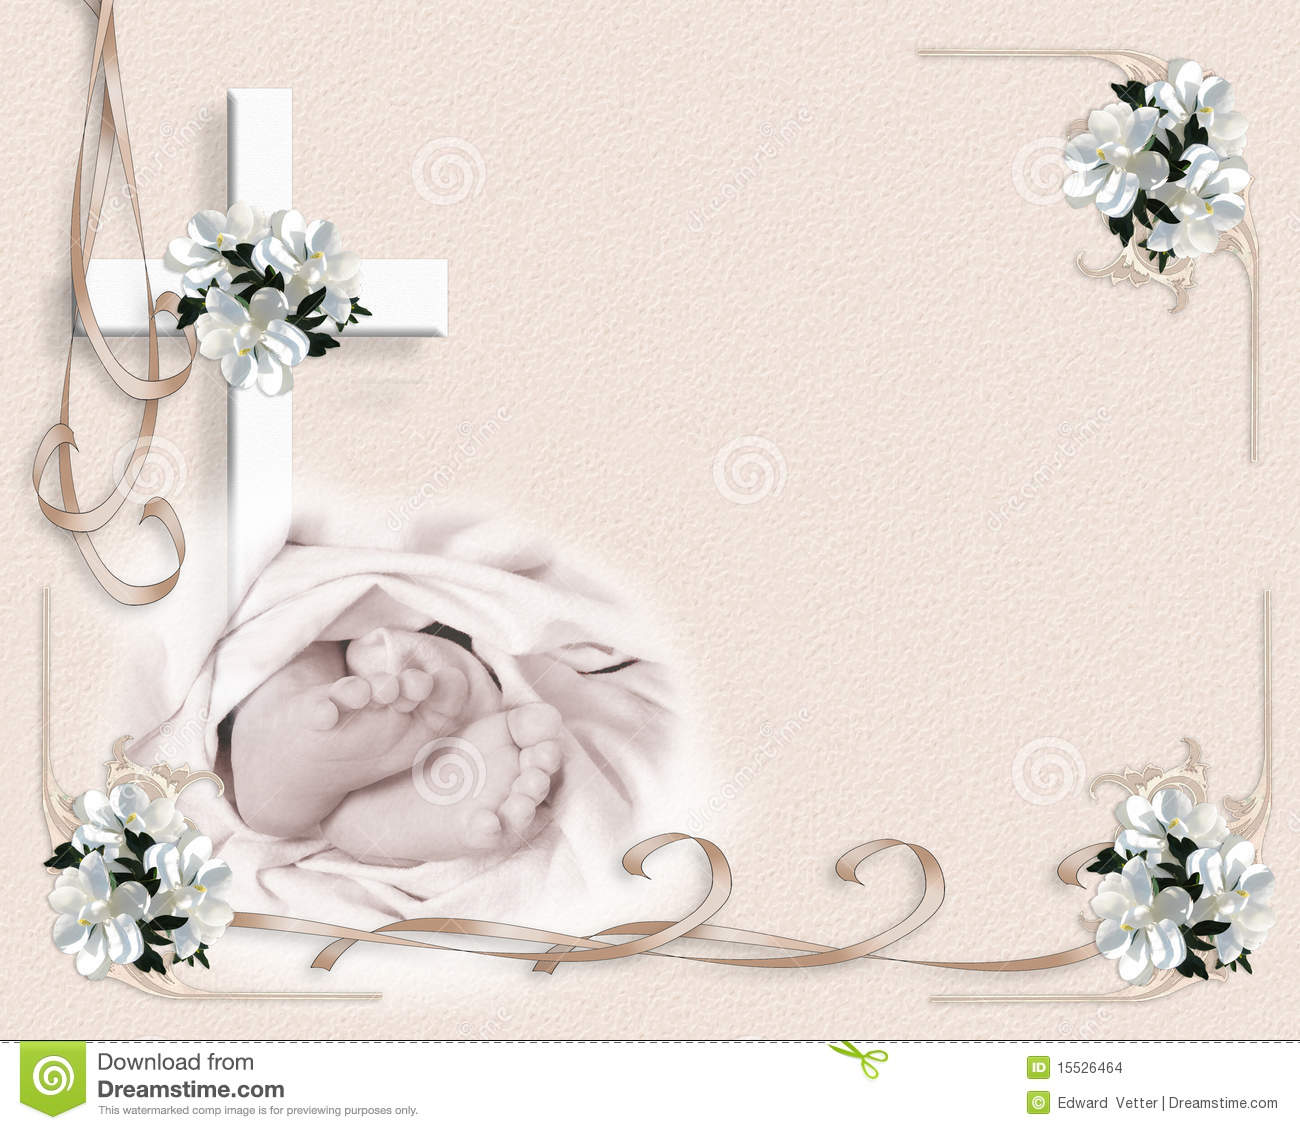 Baptism invitation christening card stock vector illustration christening baptism invitation stock images stopboris